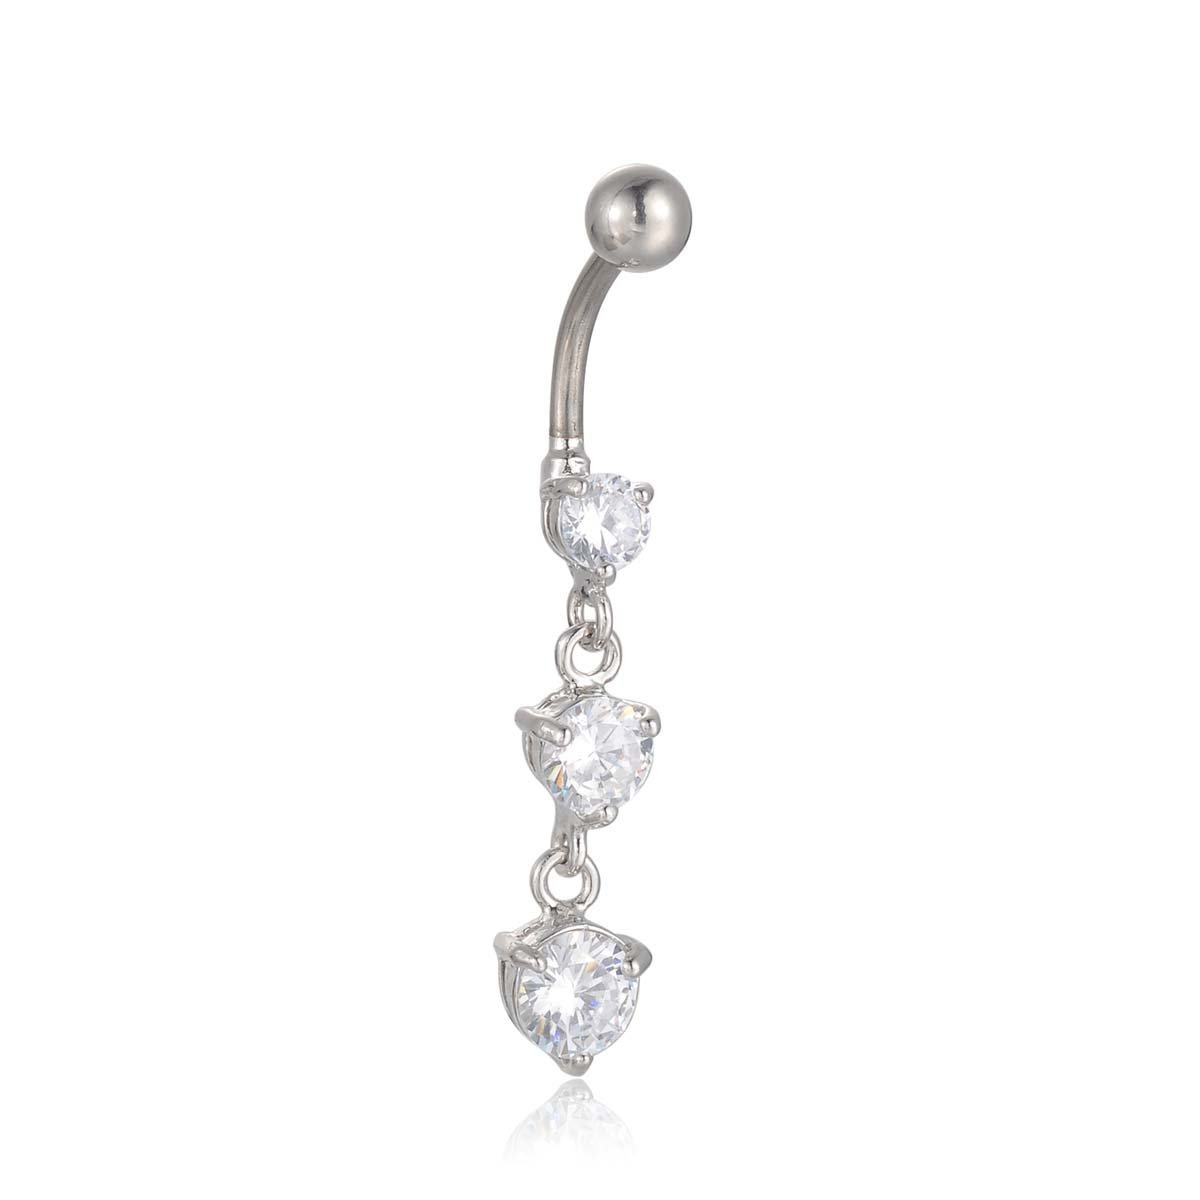 Candyfancy Triple Round Crystal 316l Surgical Steel Dangle Belly Button Ring Navel Ring Barbell 14g BR157